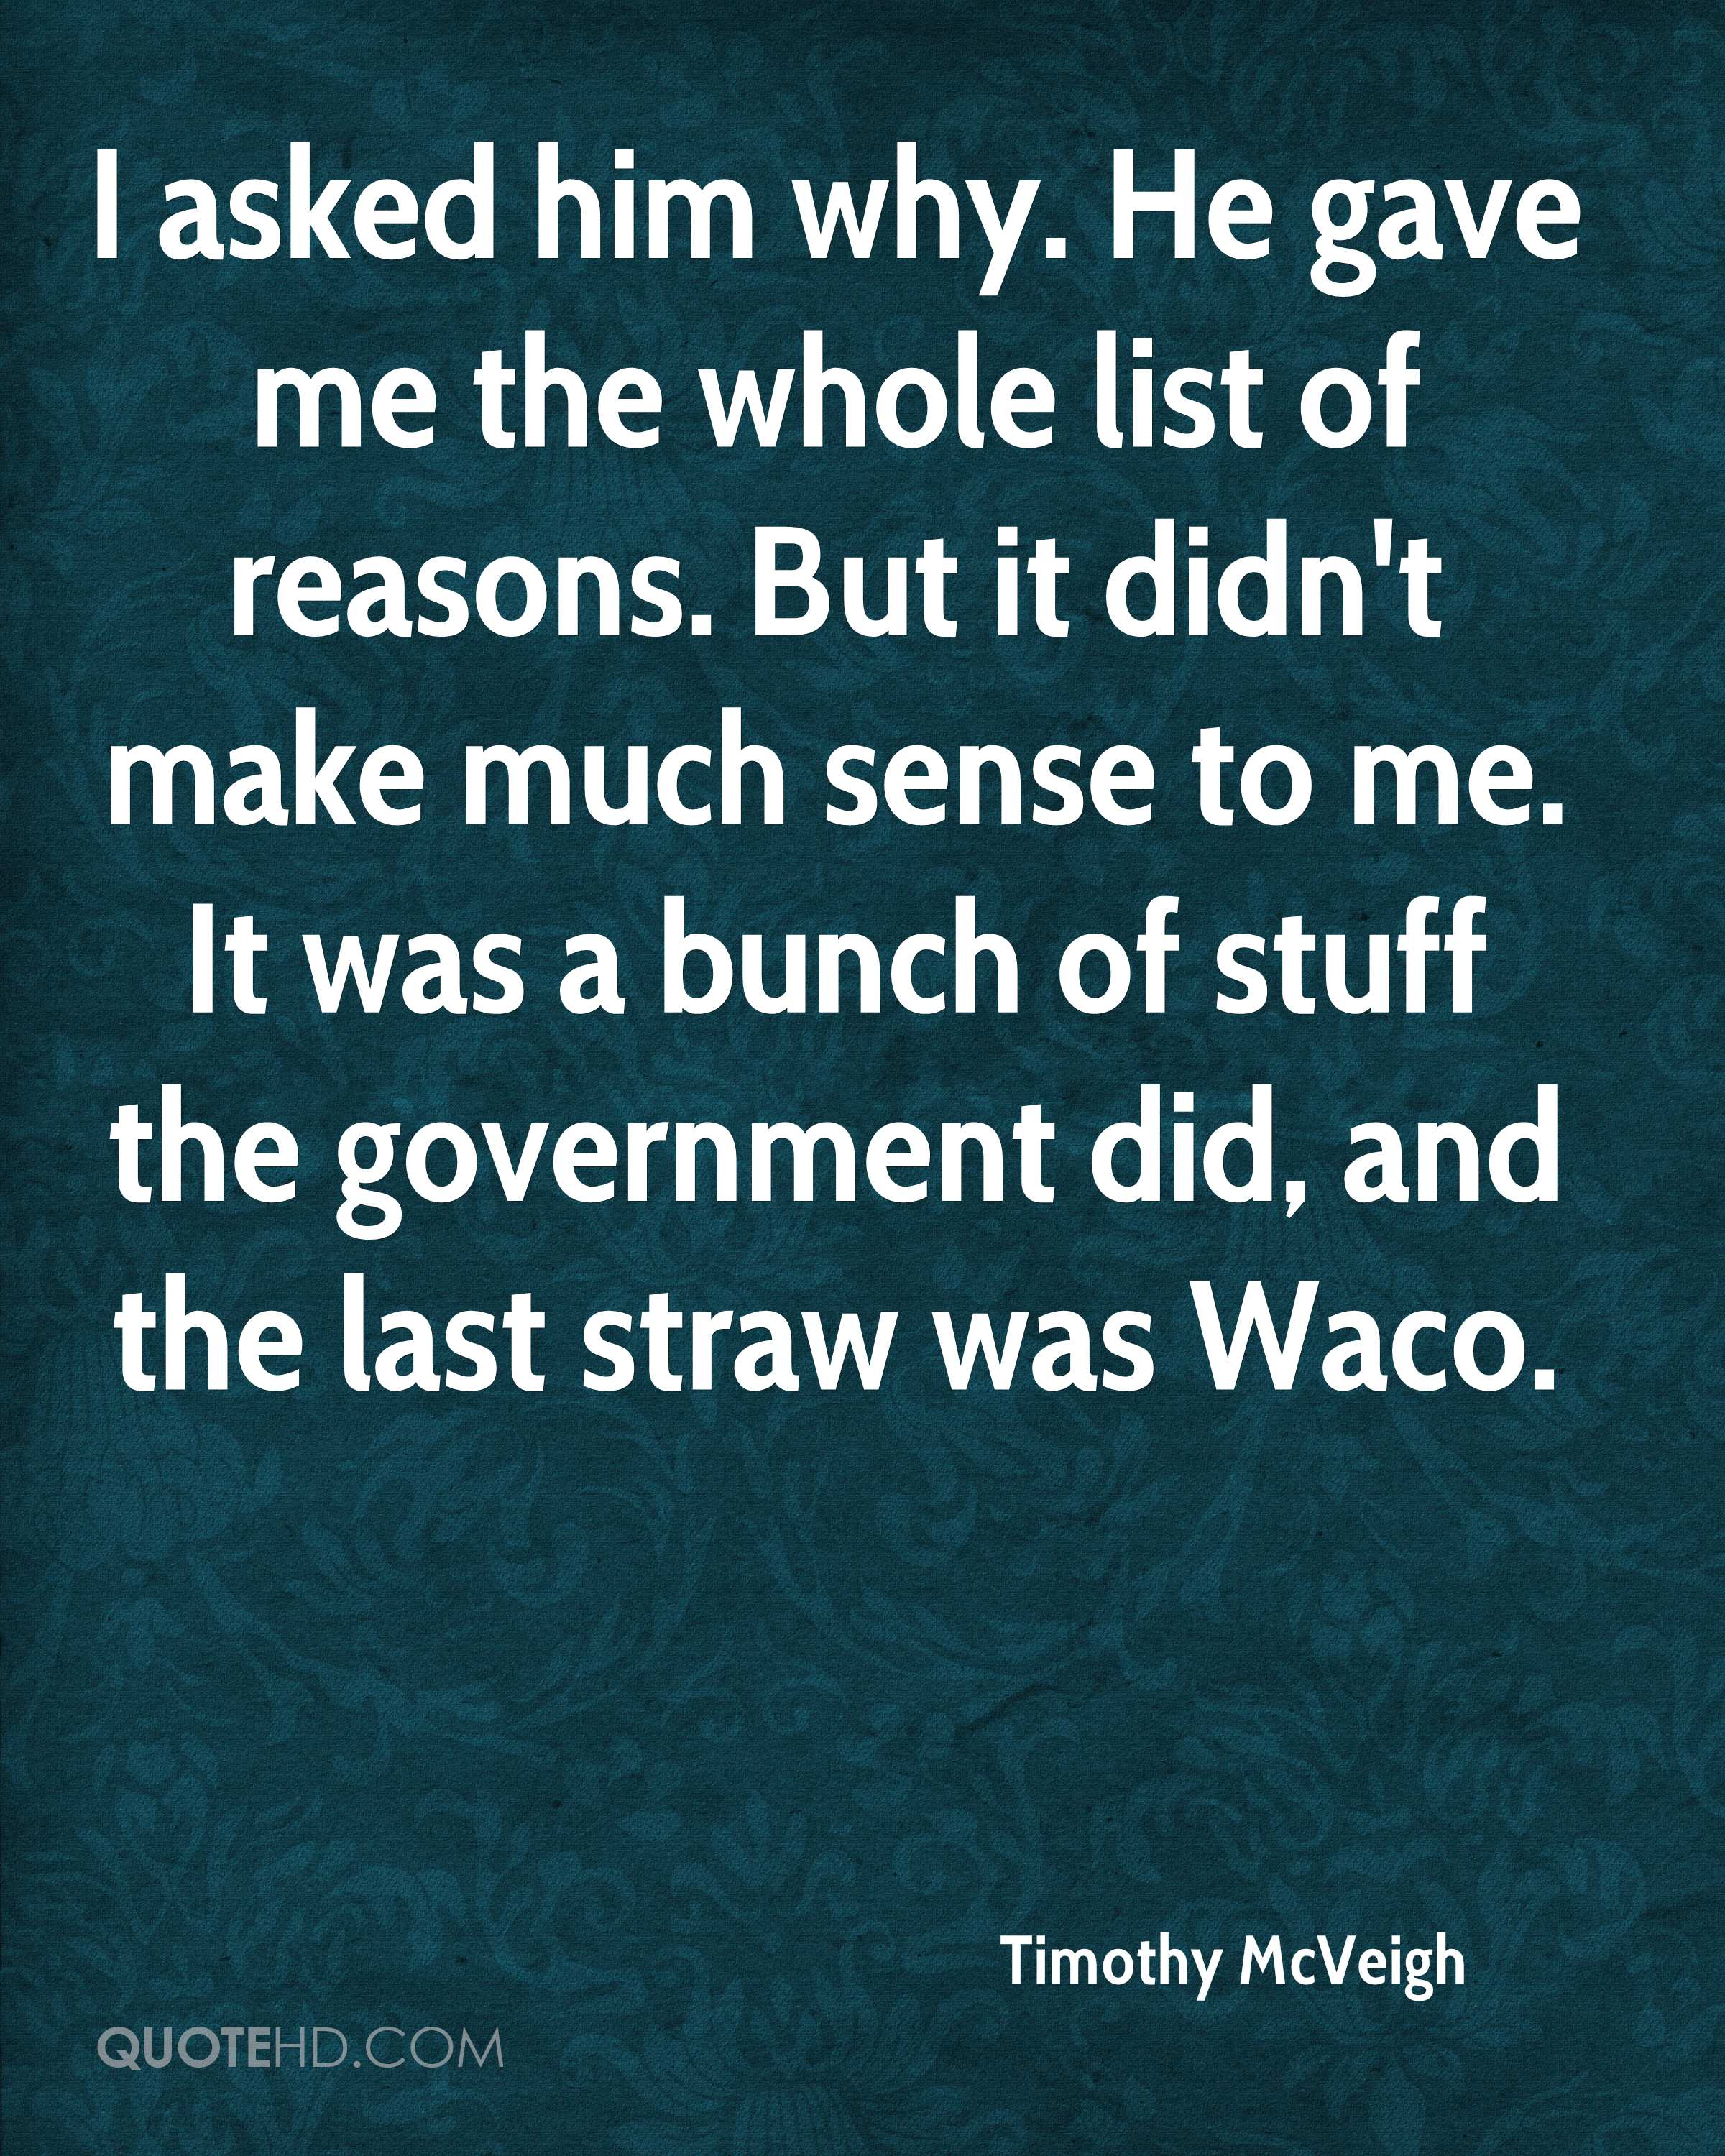 I asked him why. He gave me the whole list of reasons. But it didn't make much sense to me. It was a bunch of stuff the government did, and the last straw was Waco.